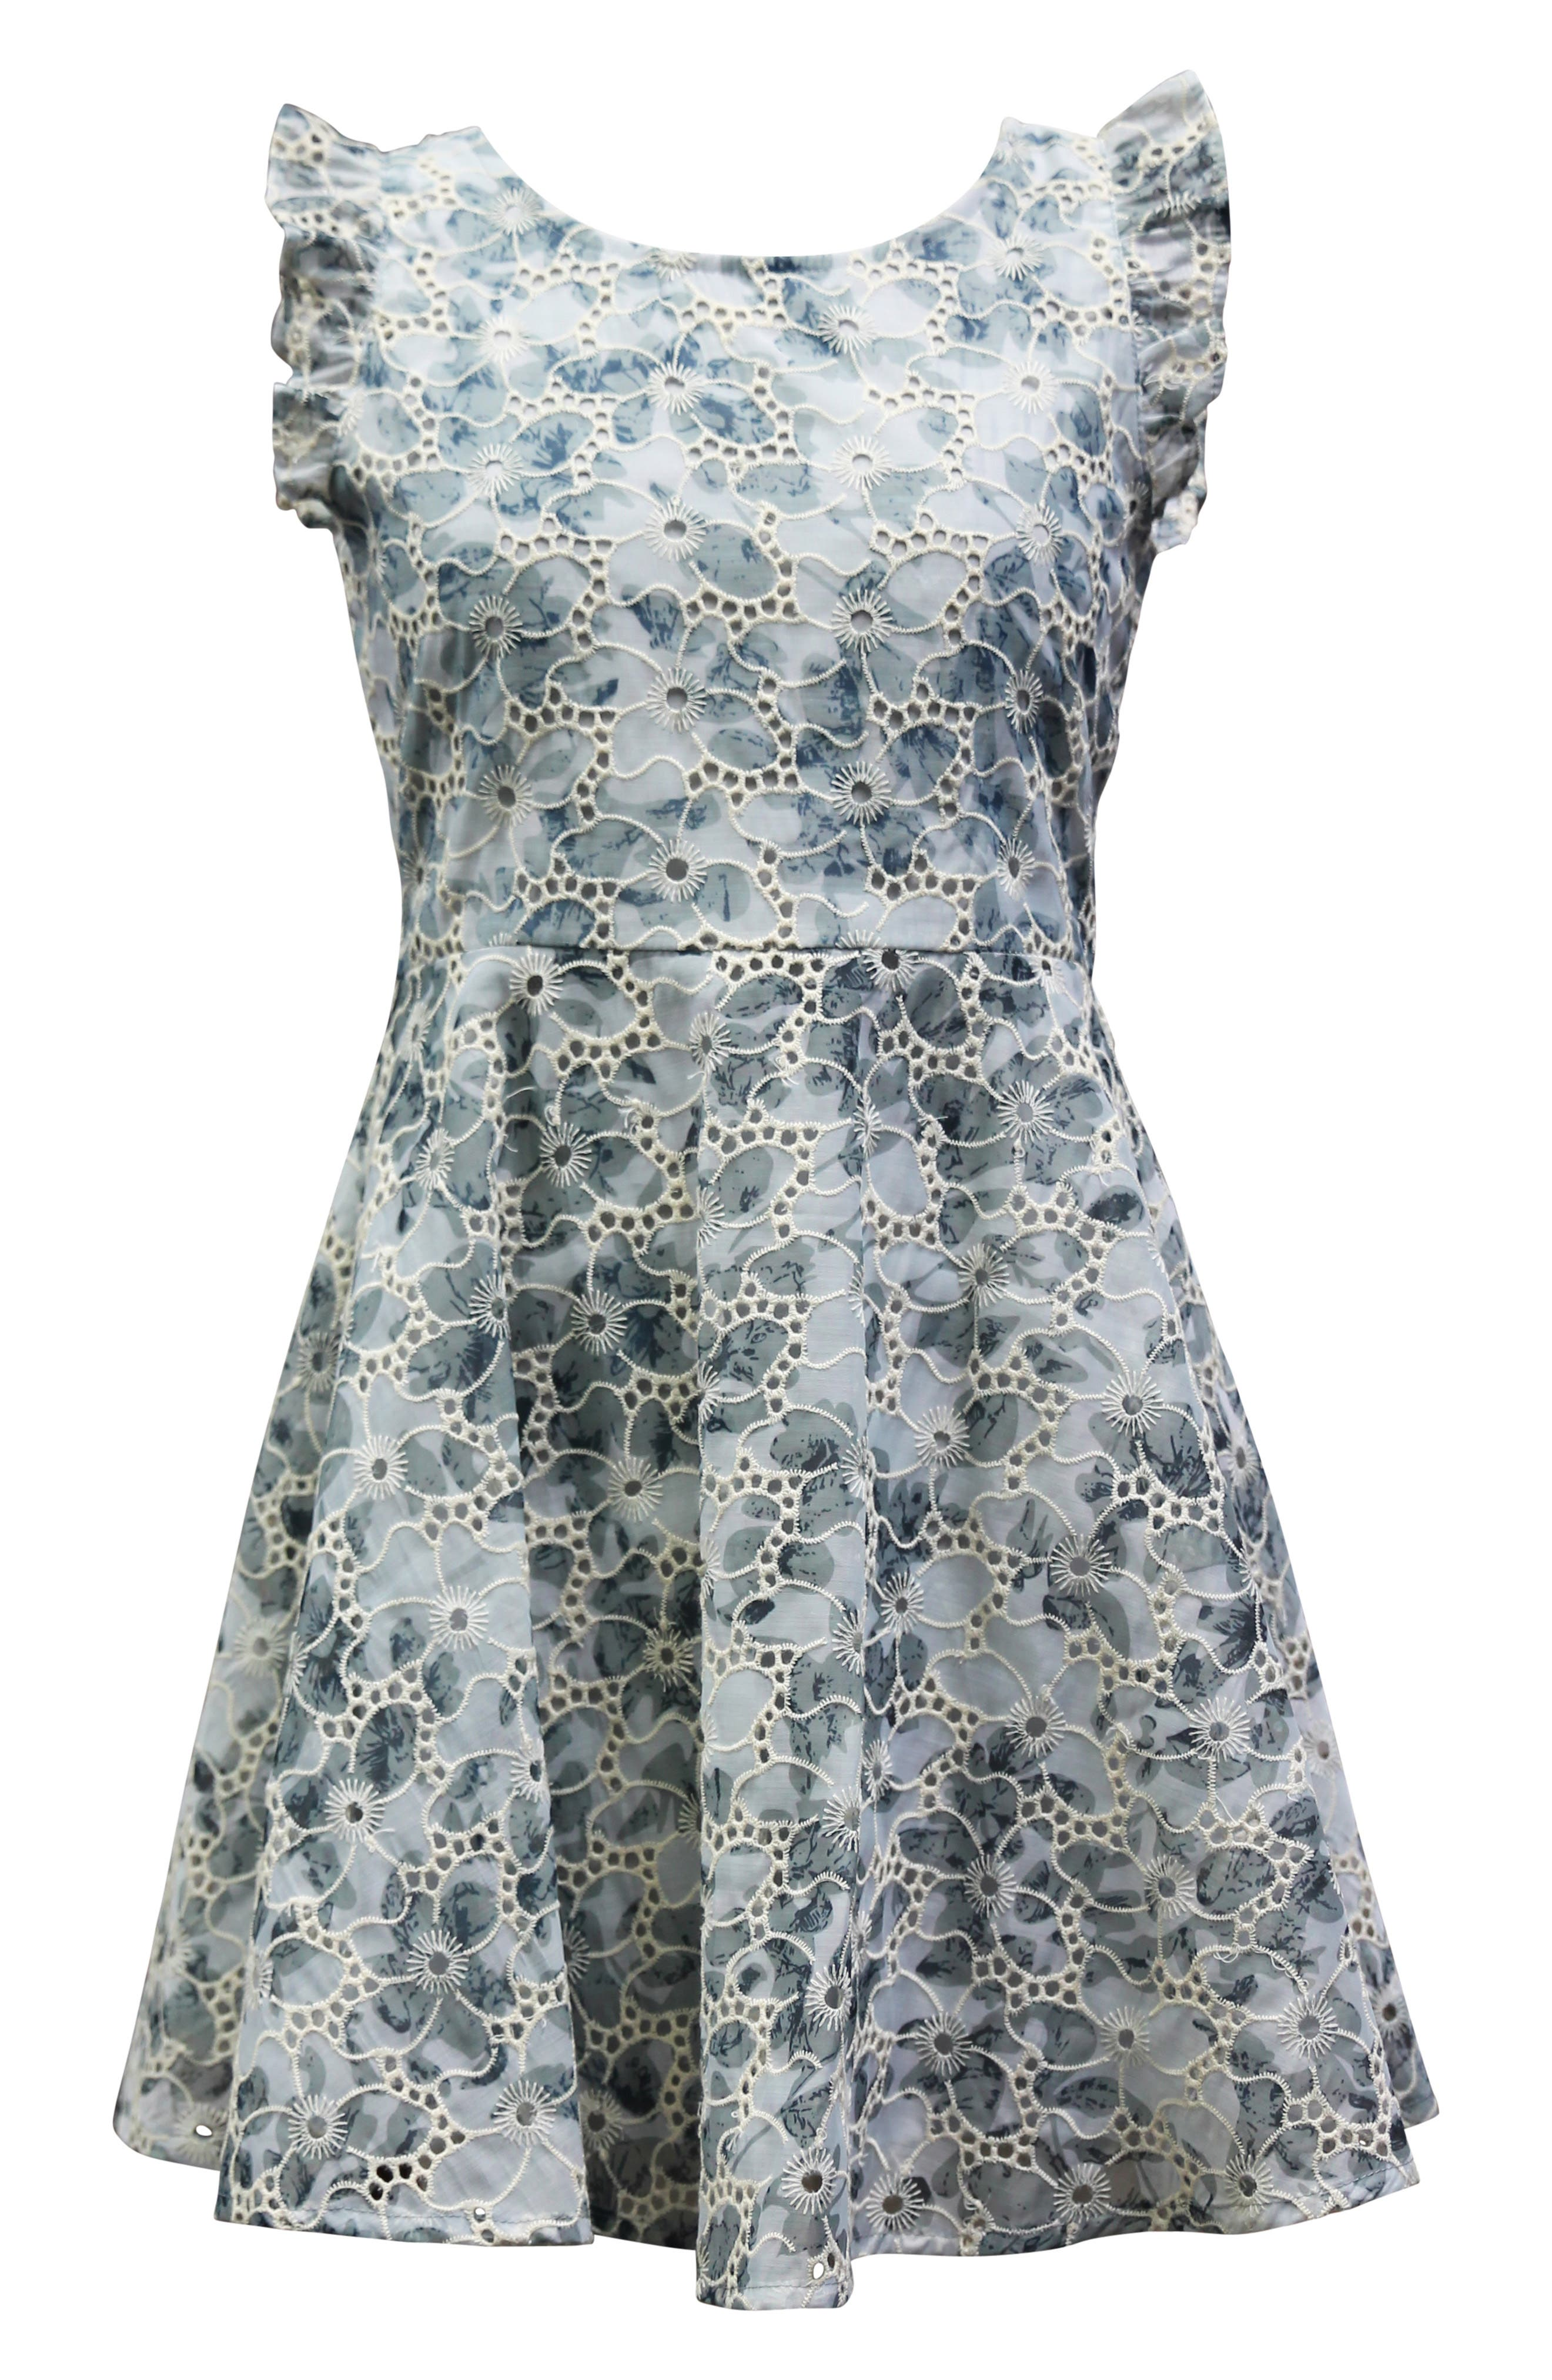 Image of AVA AND YELLY Floral Eyelet Skater Dress